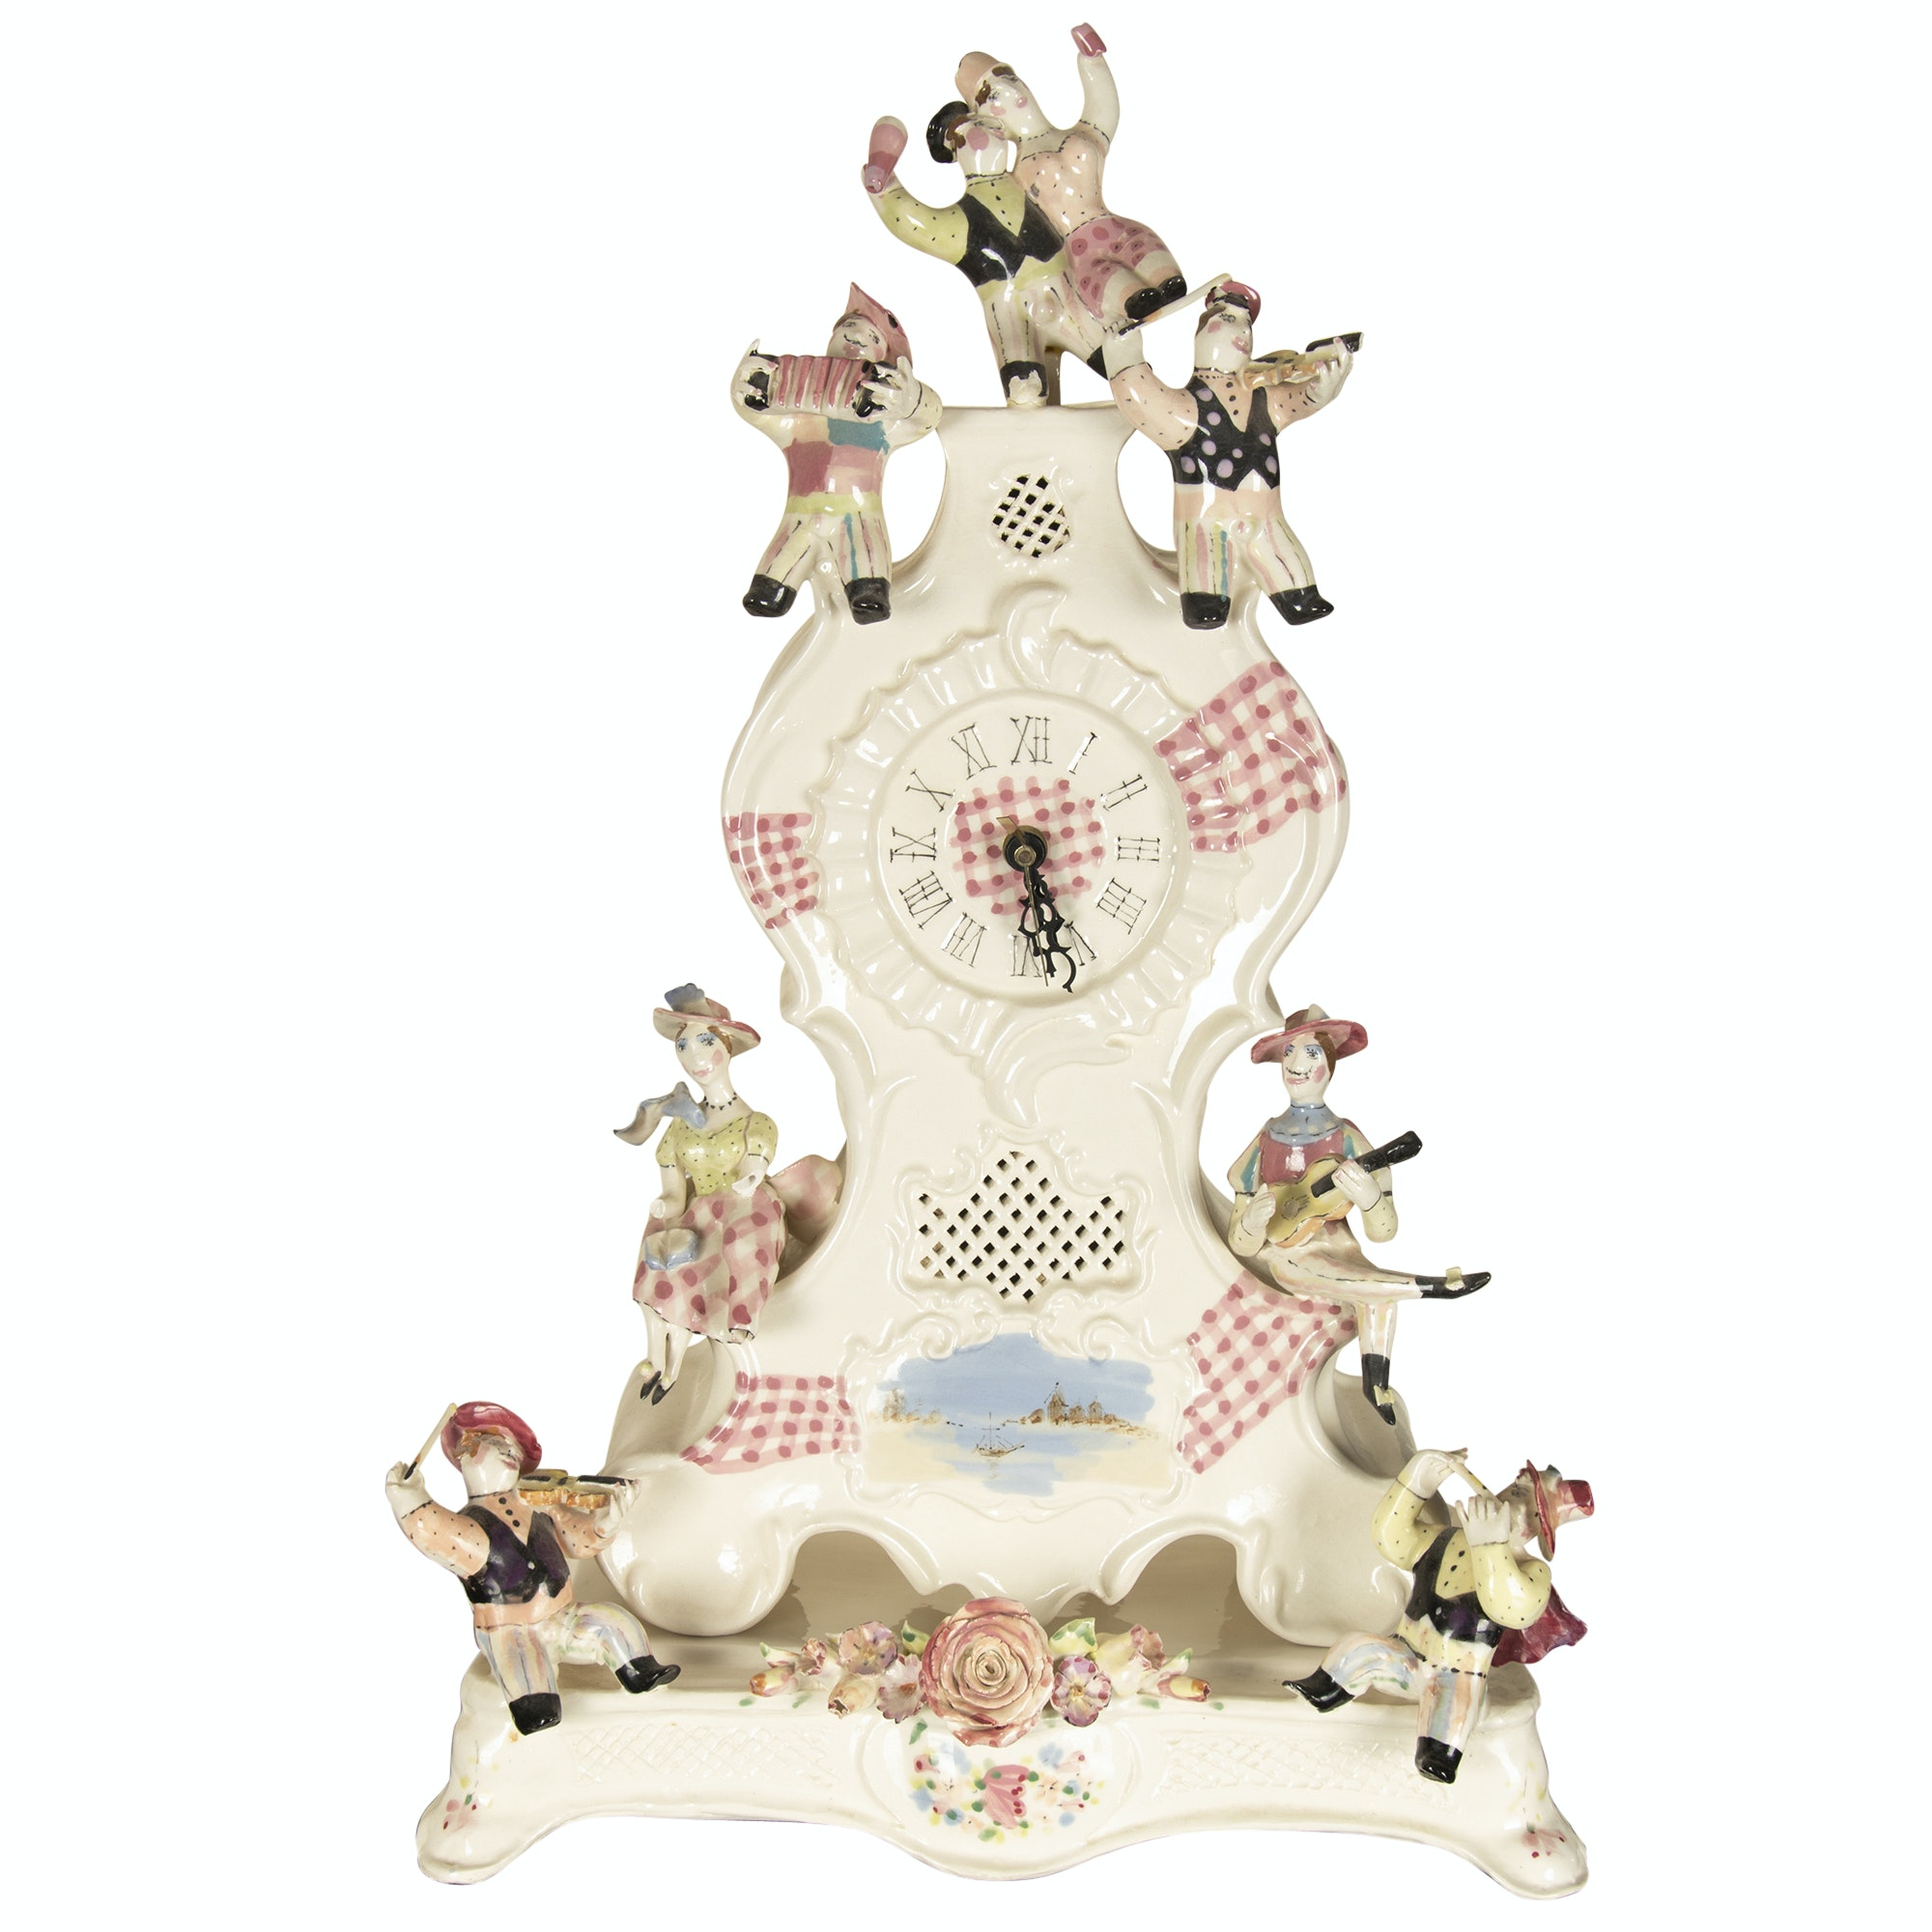 Noi Volkov Cast and Hand-Painted Porcelain Mantel Clock with Figures